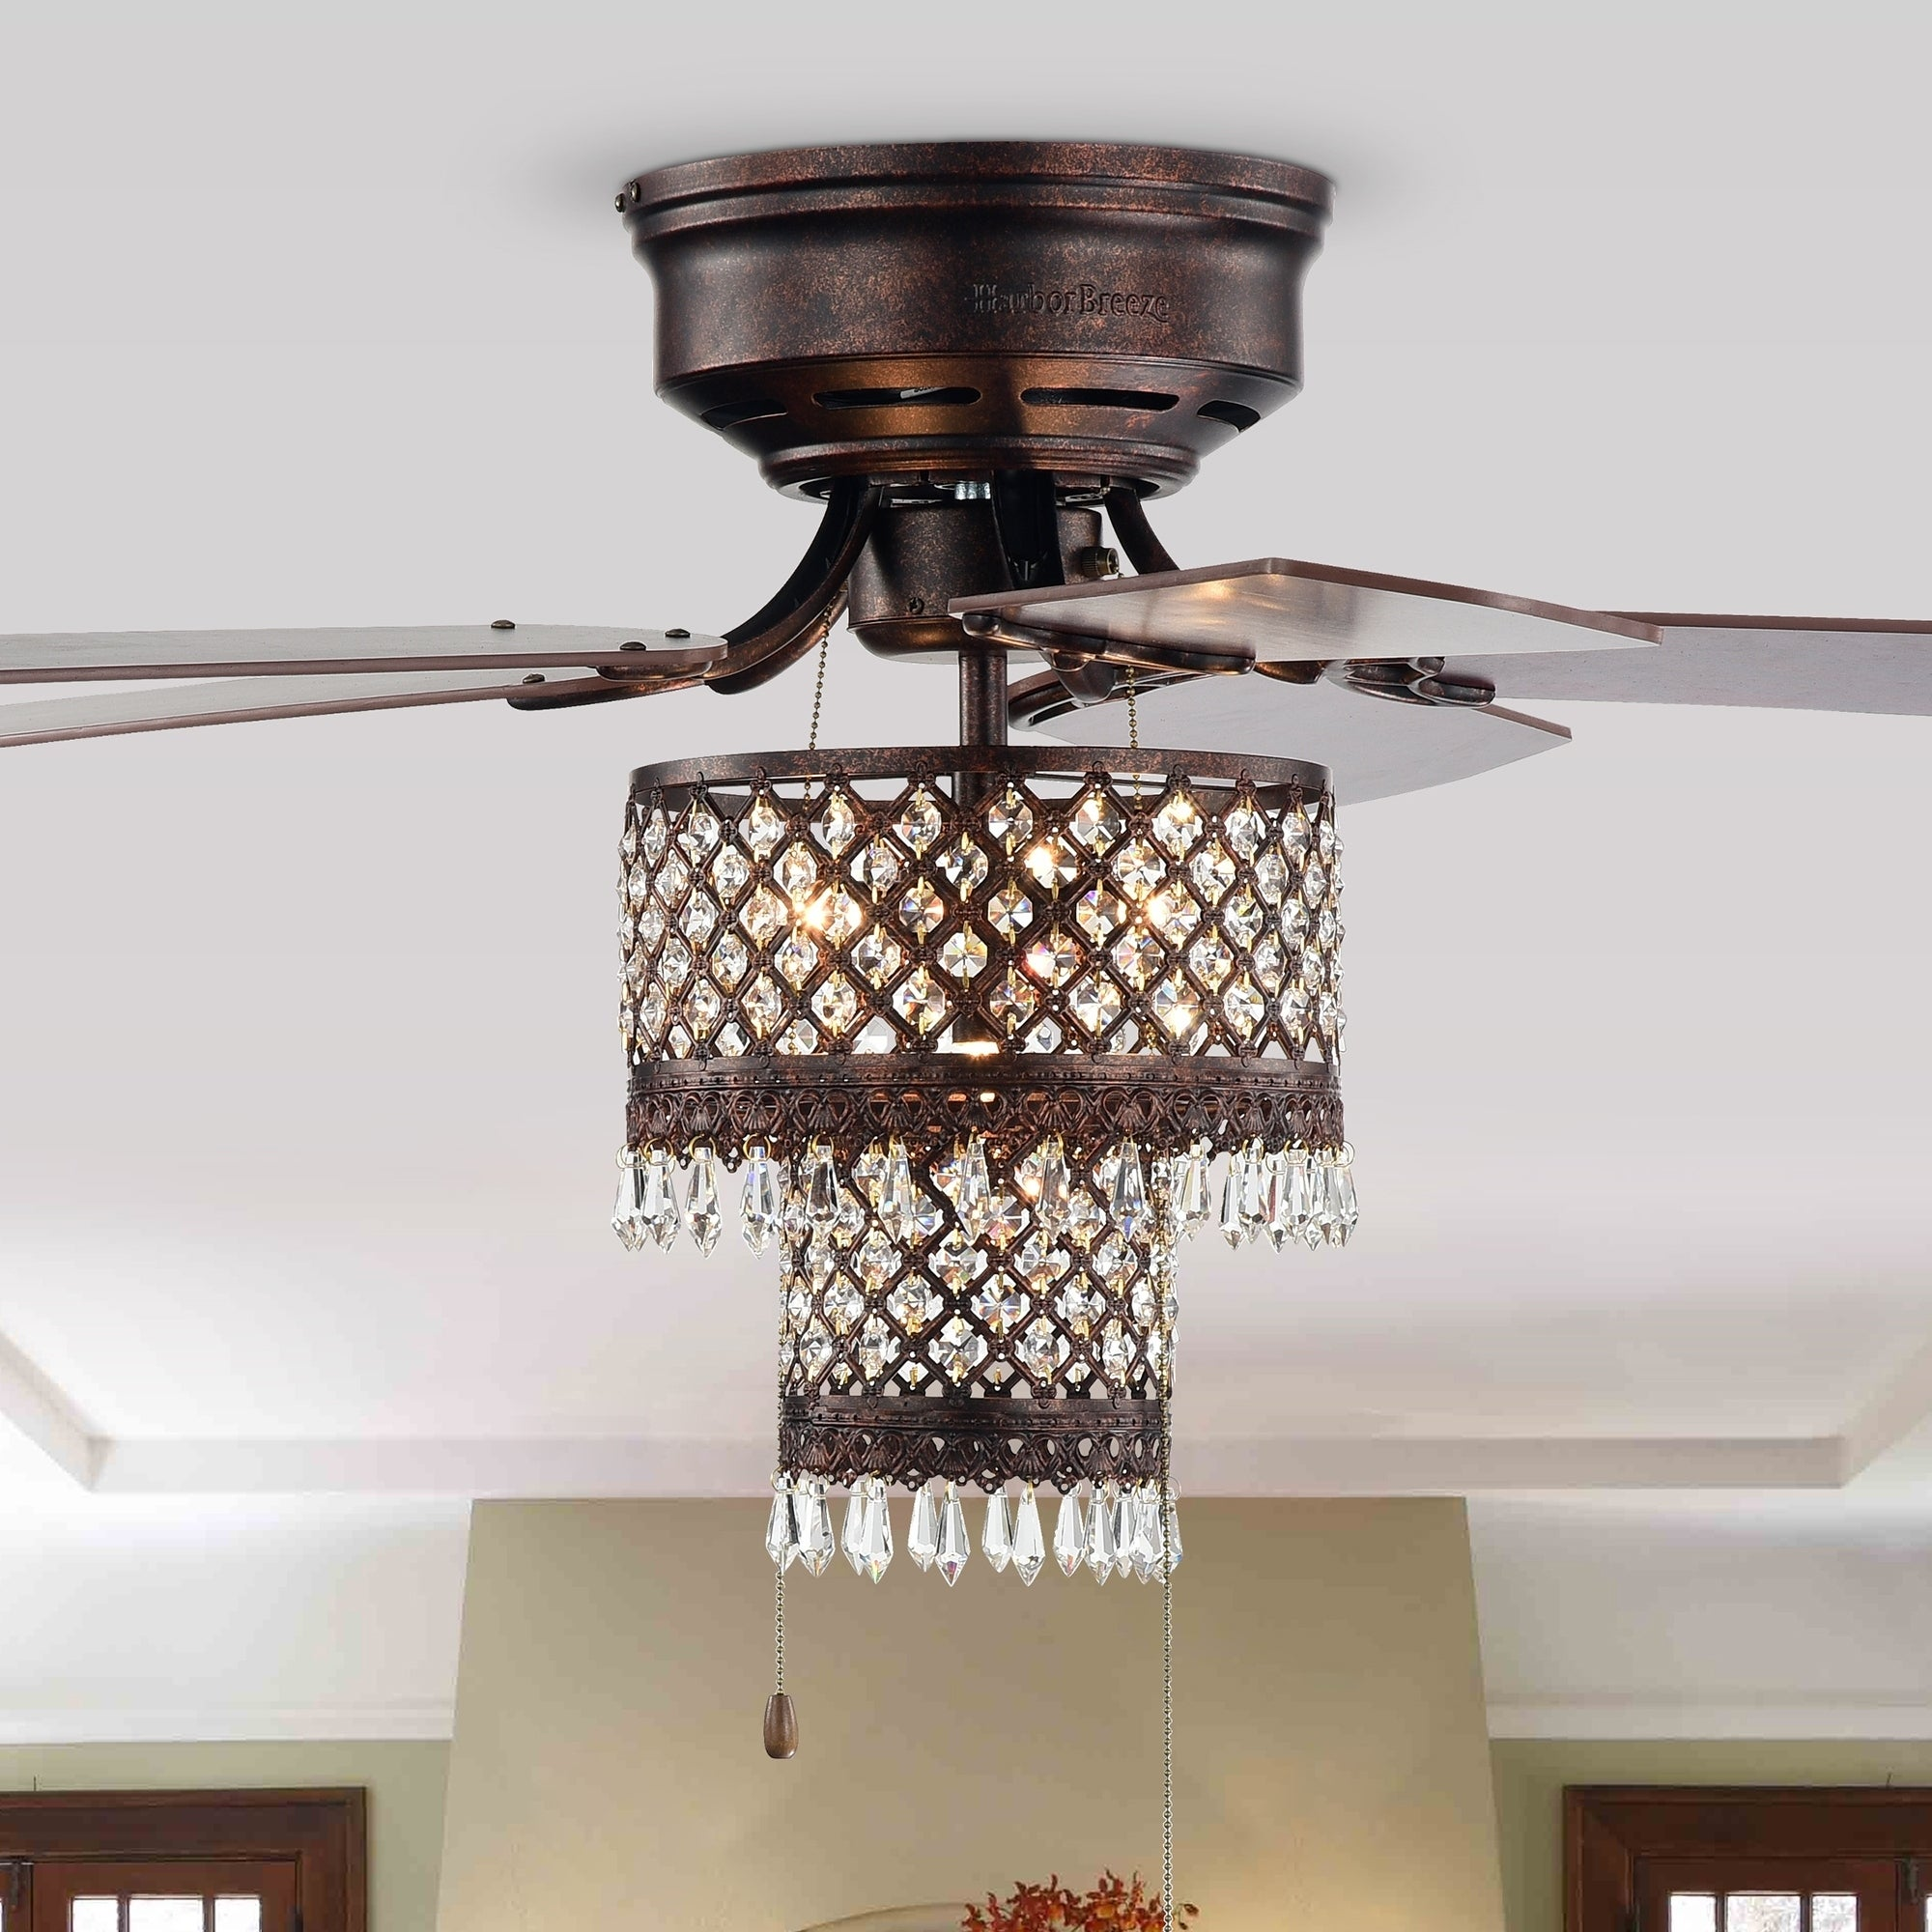 Image of: Shop Black Friday Deals On Gracewood Hollow Huo 52 Inch Rustic Bronze Lighted Flush Mount Ceiling Fan With Crystal Drum Shade Overstock 30541548